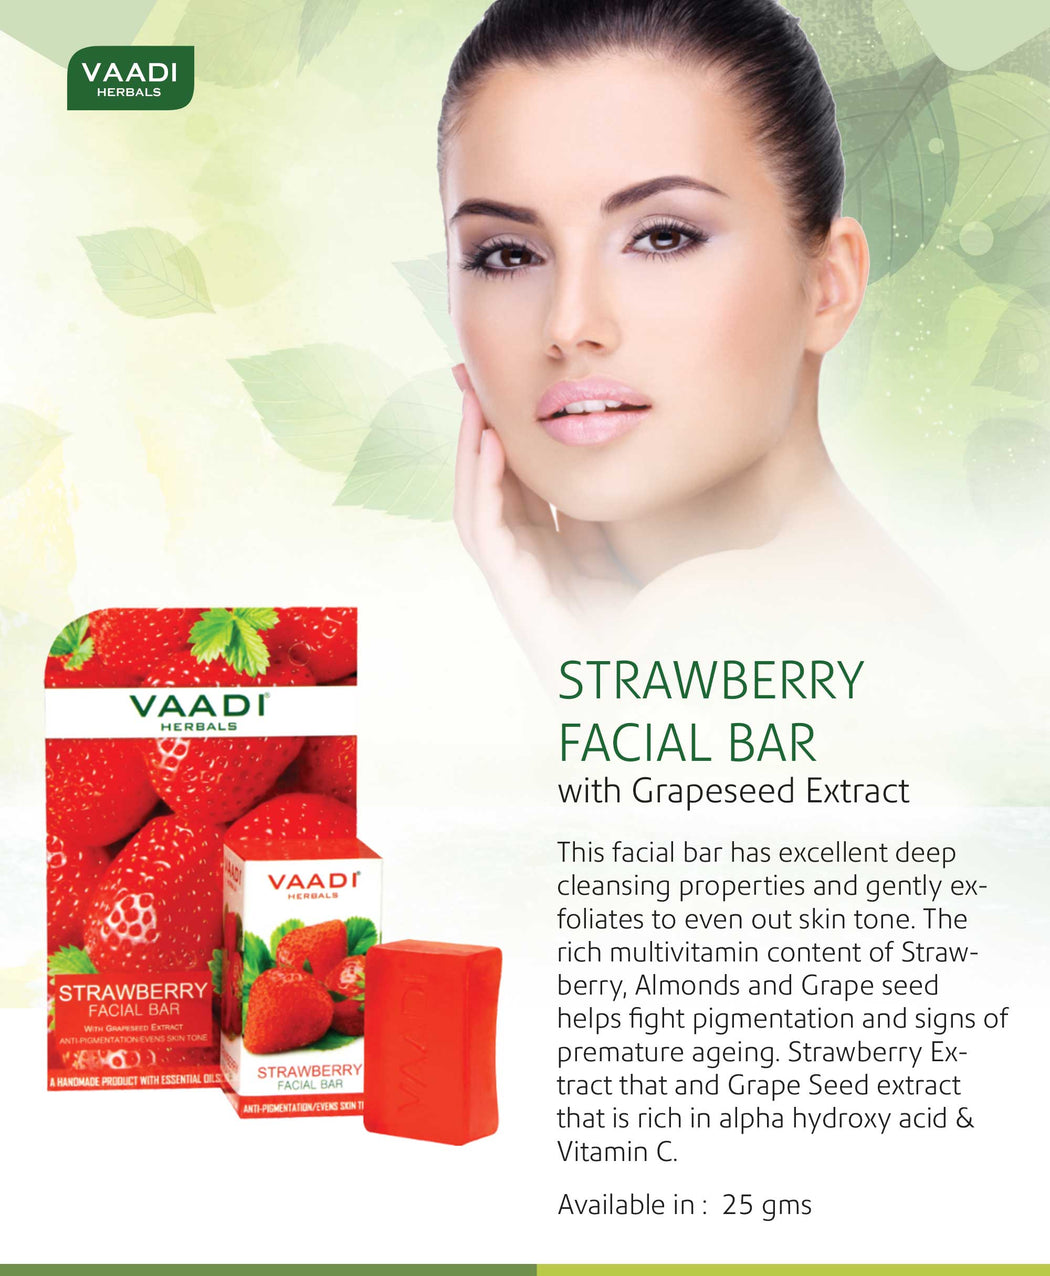 Pack of 6 Strawberry Facial Bars with Grapeseed Extract (25 gms X 6)